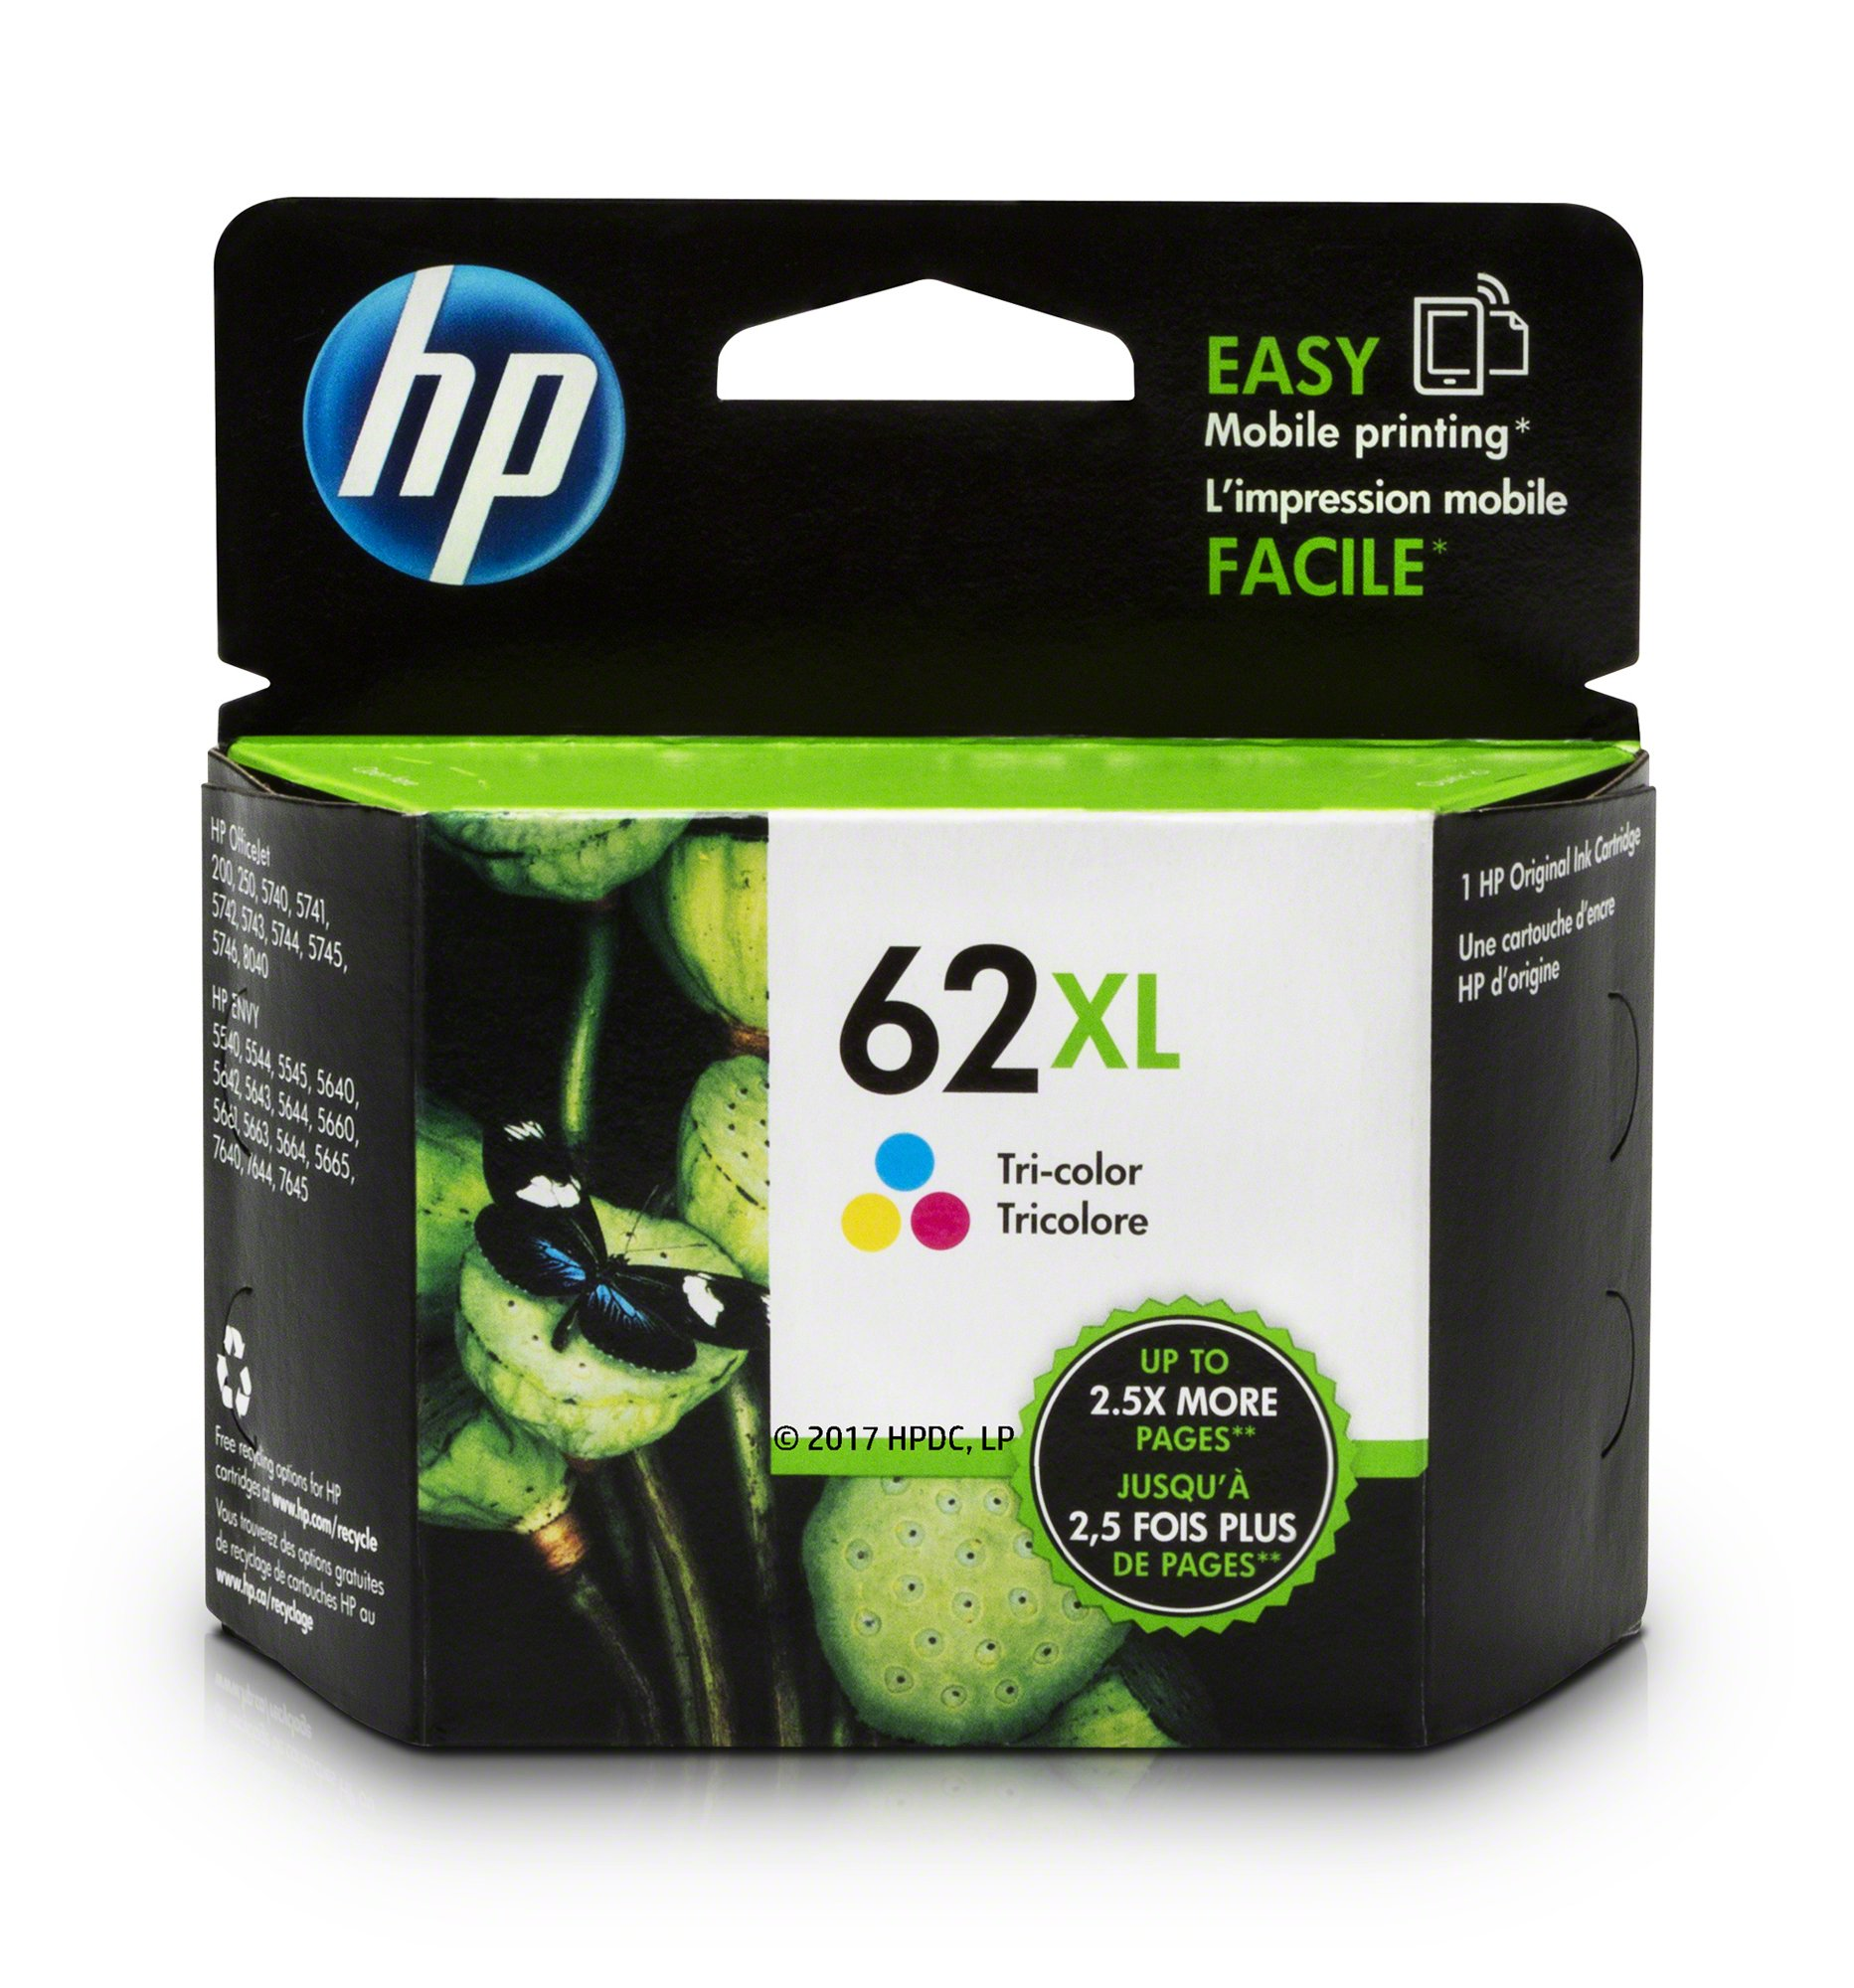 HP 62XL Tri-color High Yield Original Ink Cartridge (C2P07AN) for HP ENVY 5540 5541 5542 5543 5544 5545 5547 5548 5549 5640 5642 5643 5644 5660 5661 5663 5664 5665 7640 7643 7644 7645 HP Officejet 200 250 258 5740 5741 5742 5743 5744 5745 5746 8040 252C M